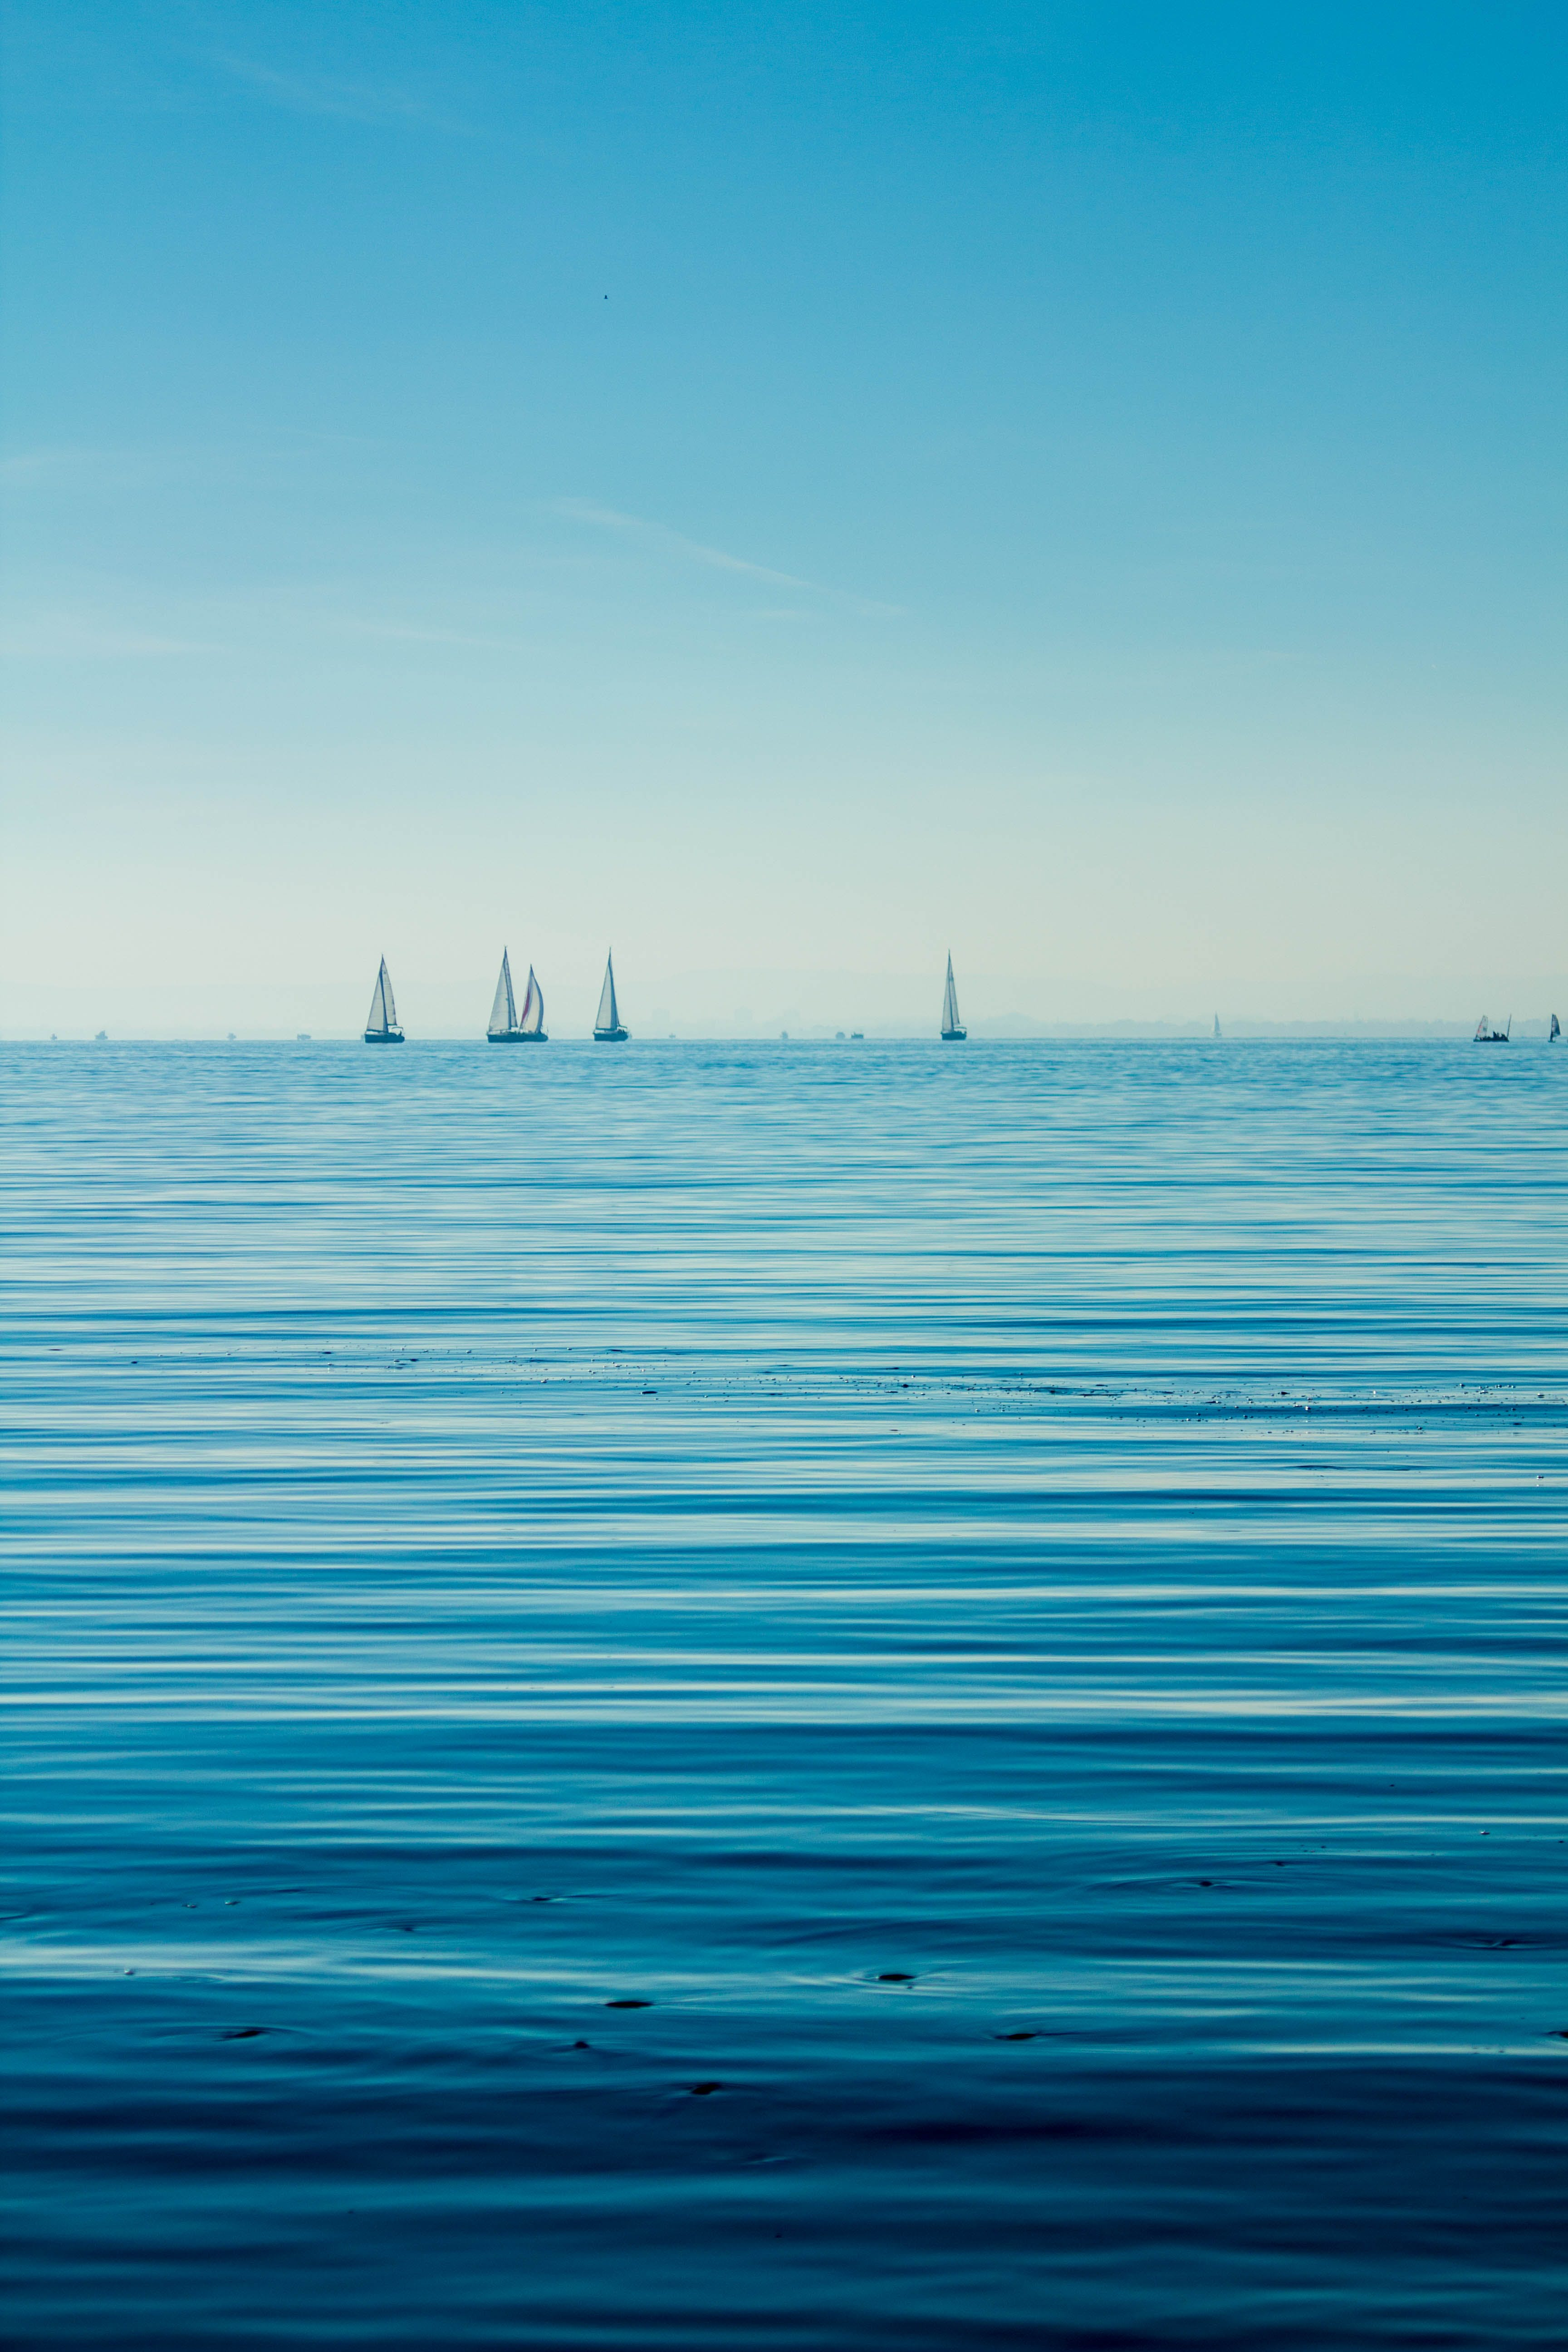 Boats on Body of Water Under Blue Sky